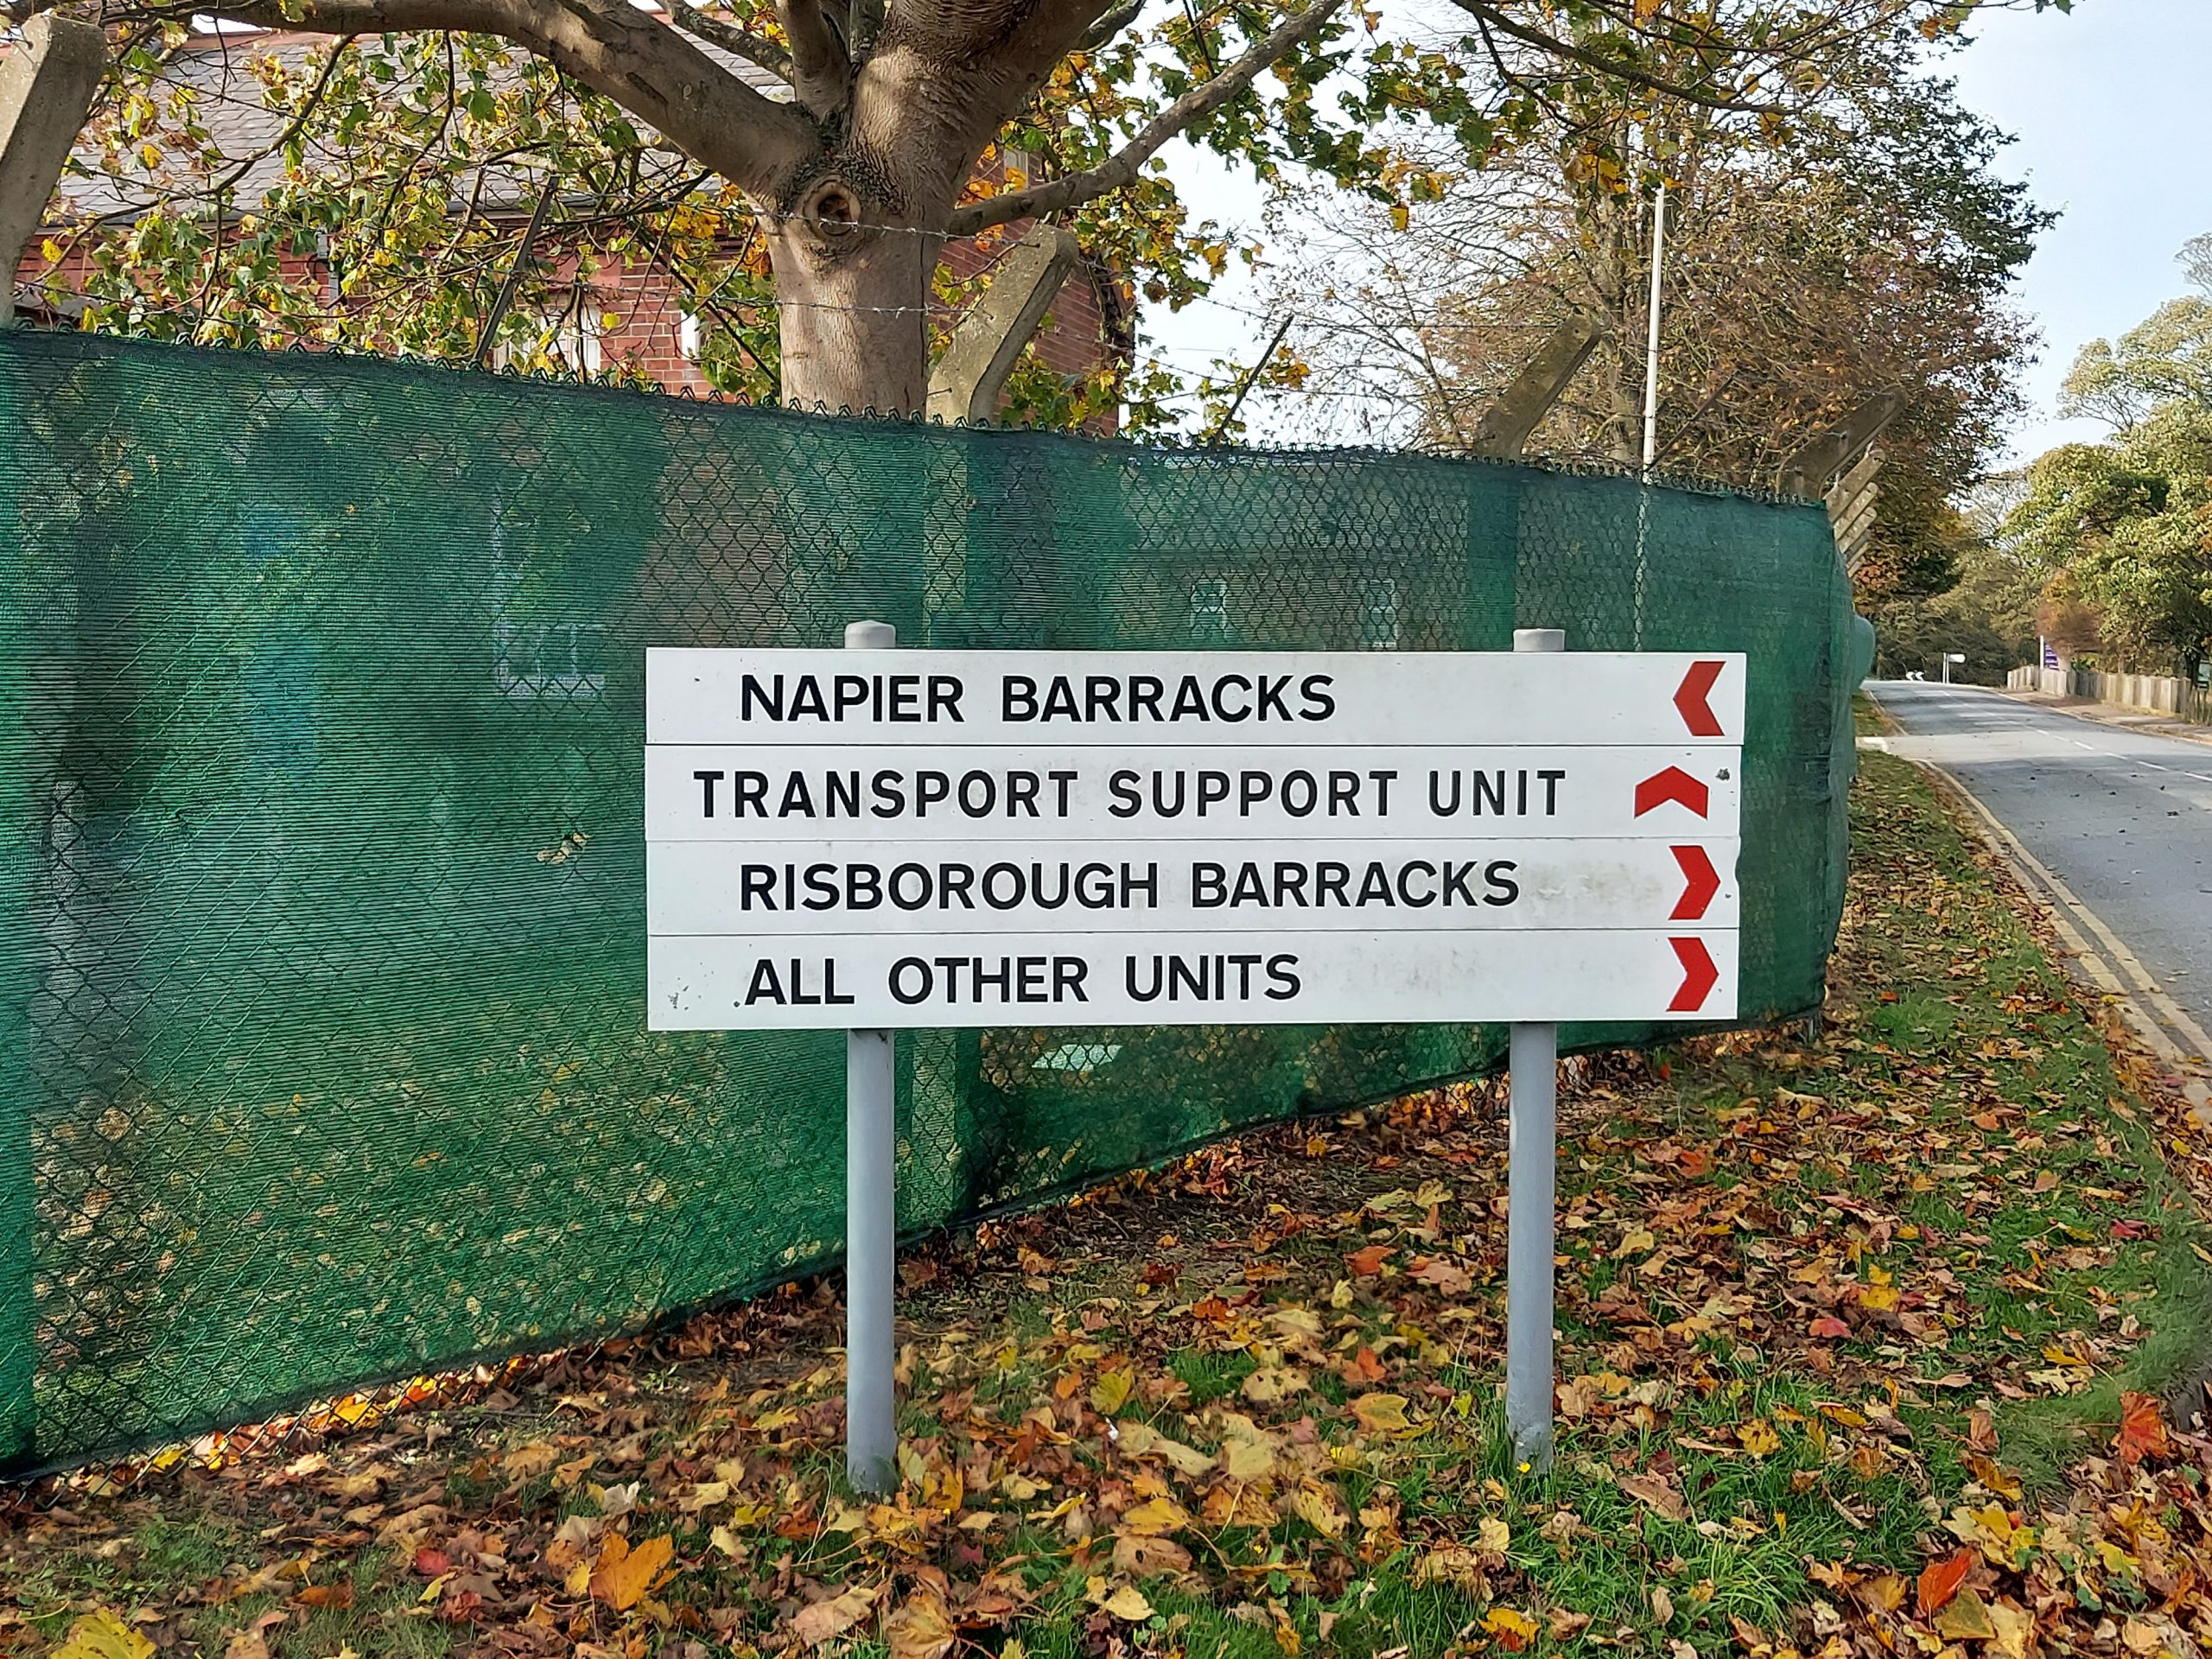 Home Office Refuse To Reveal Information On Napier Barracks